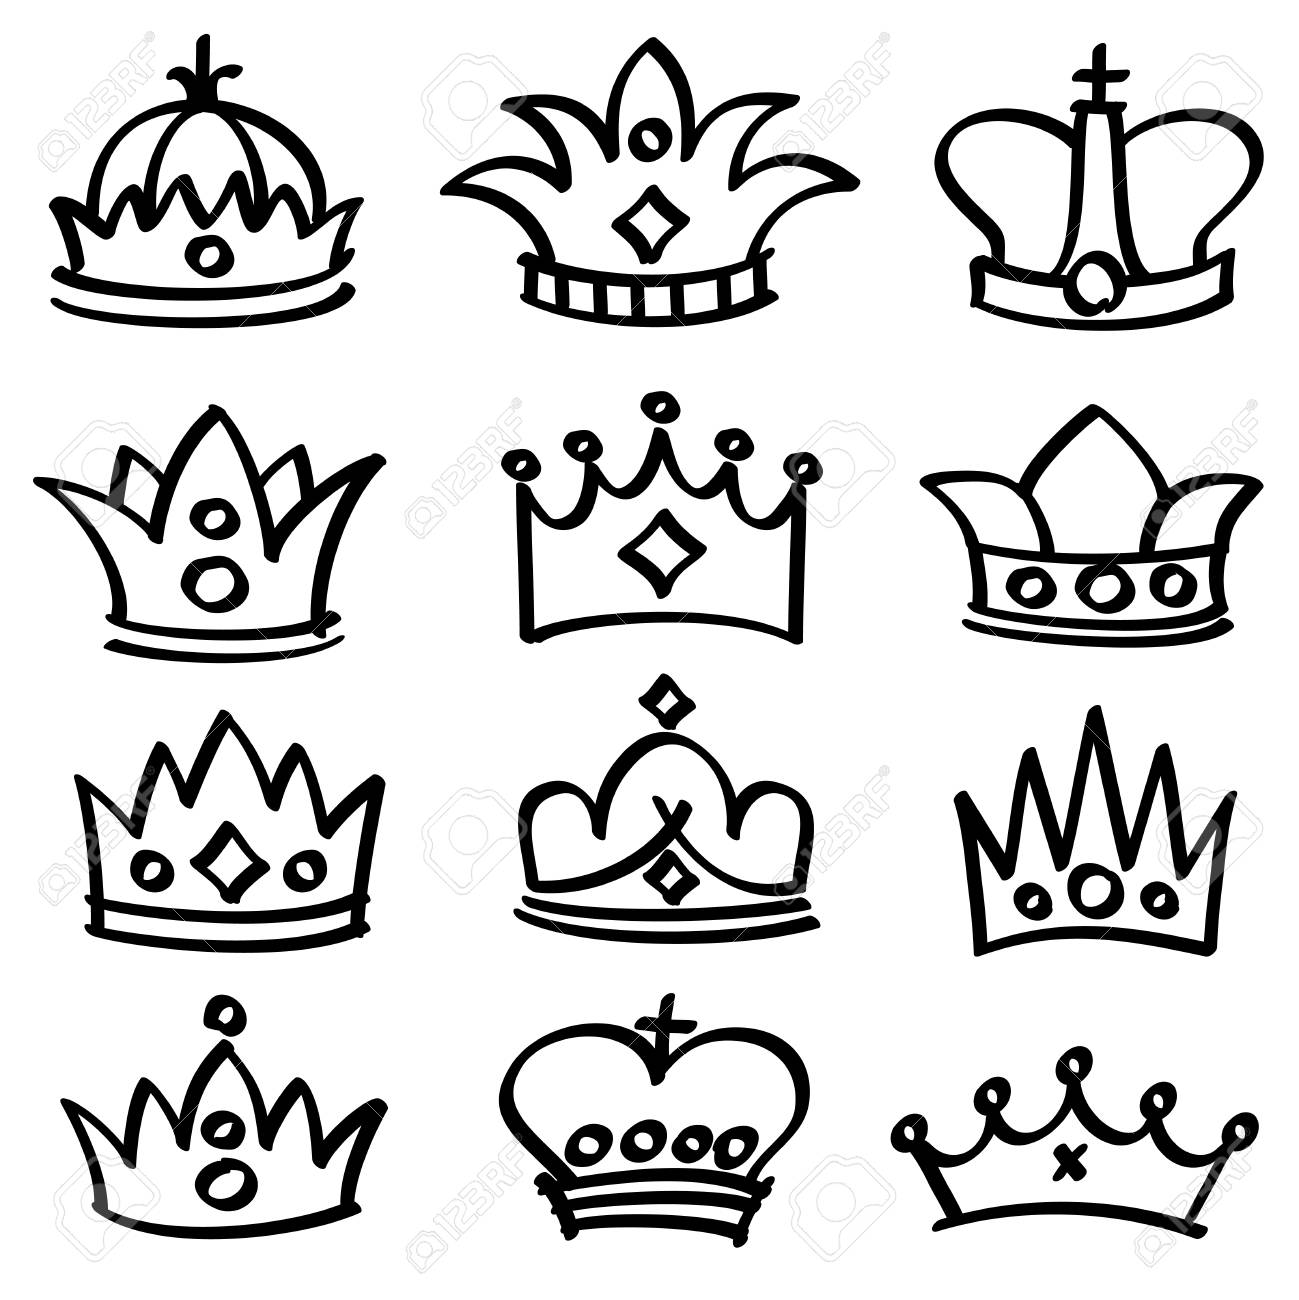 1299x1300 Luxury Doodle Queen Crowns Vector Sketch Collection. King Crown